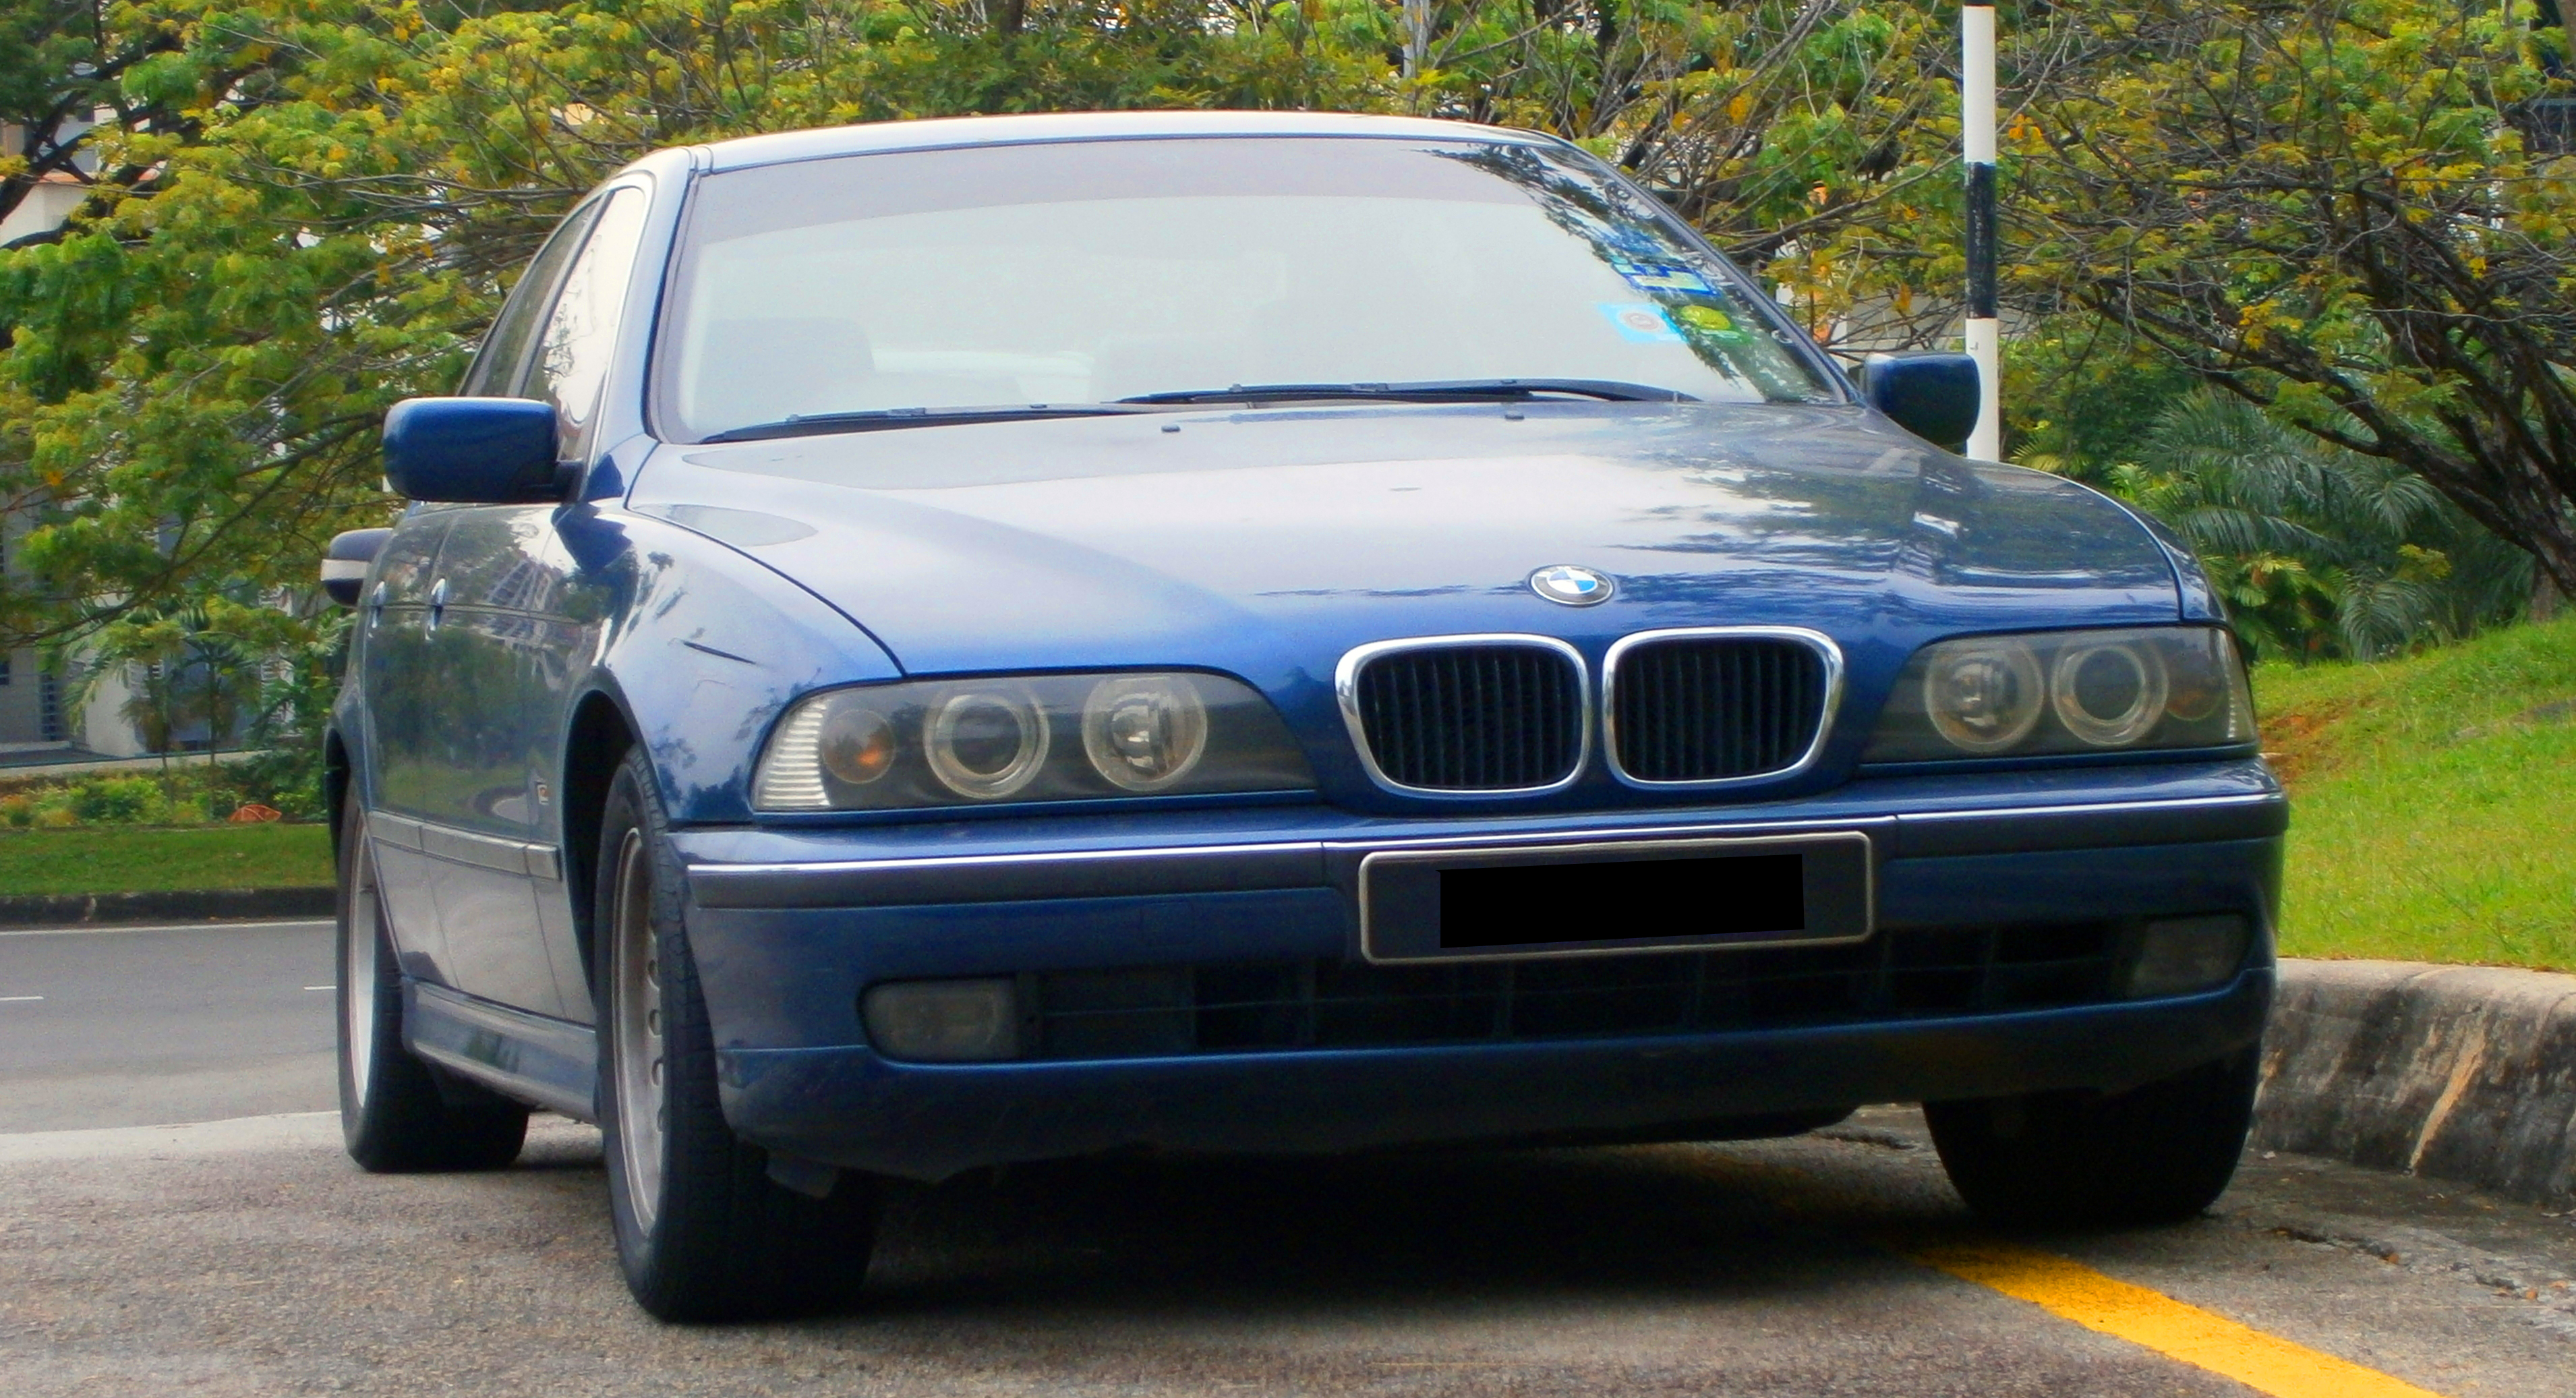 BMW 5 series 523i 1999 photo - 3